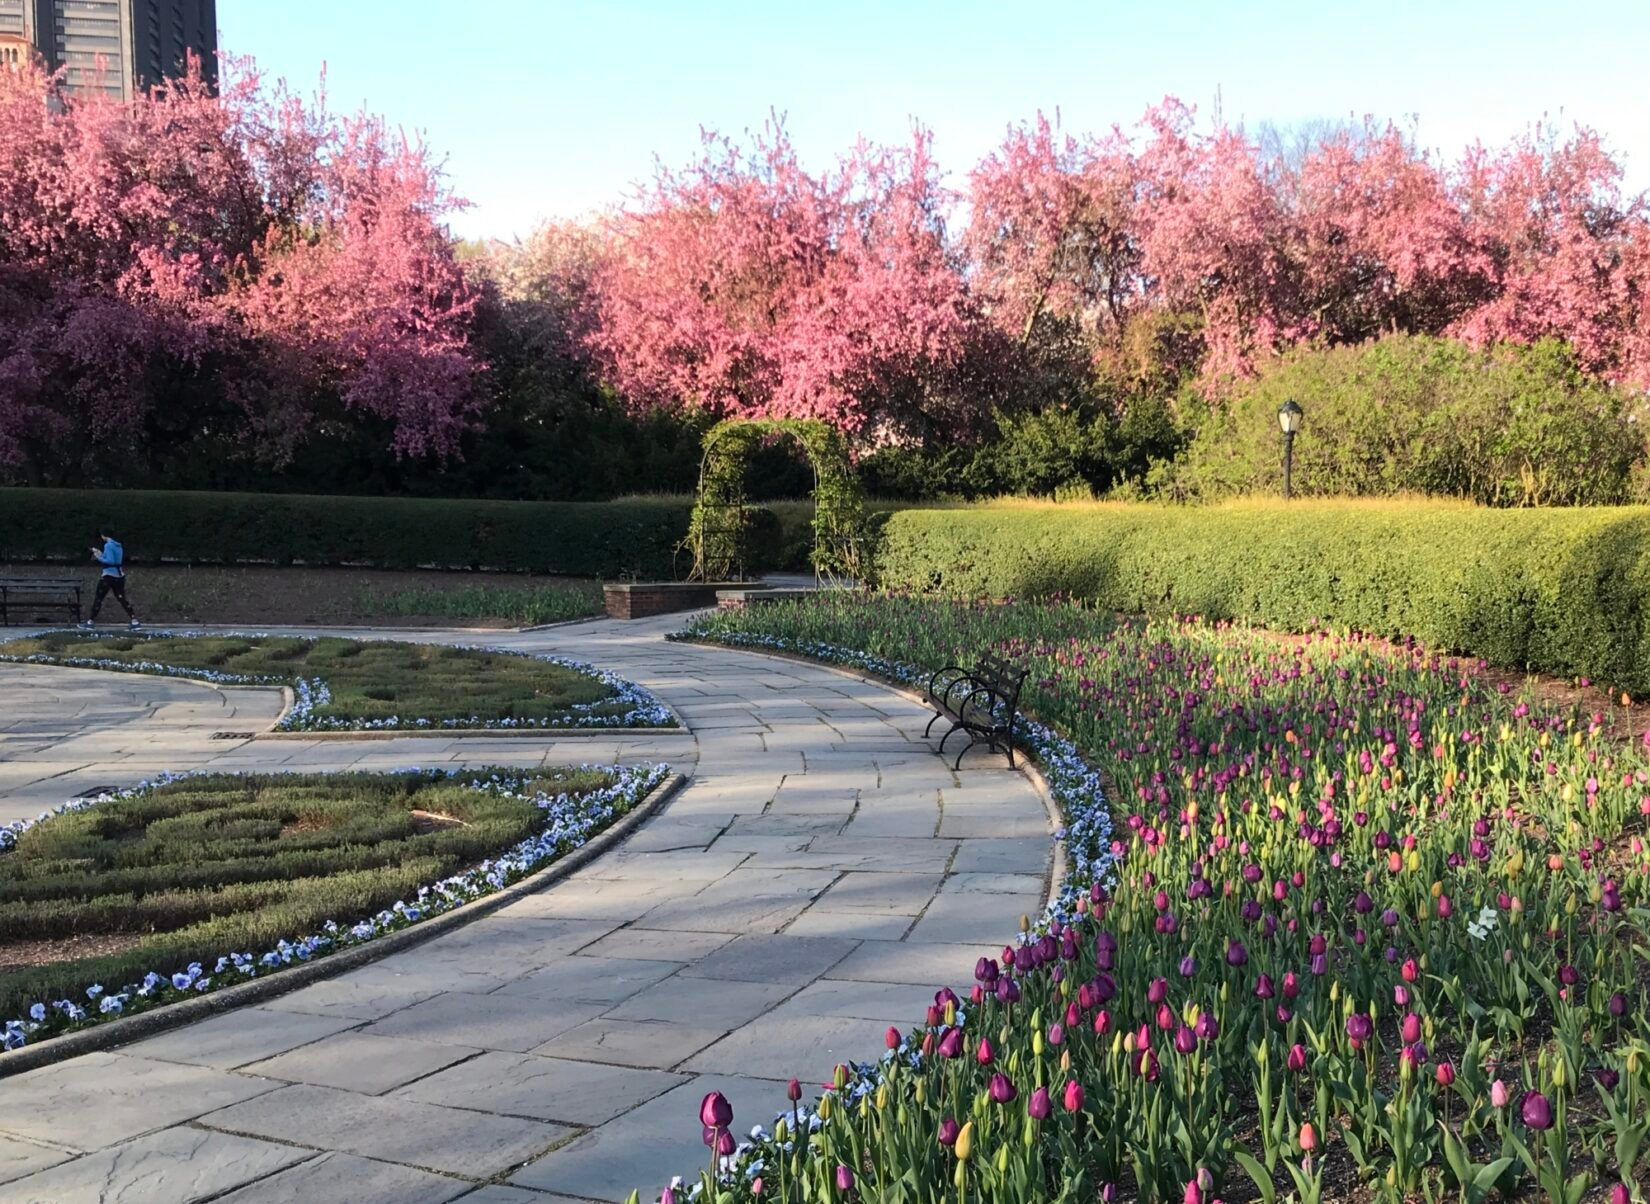 The curved path of the garden is ringed by spring flowers and a manicured hedge.